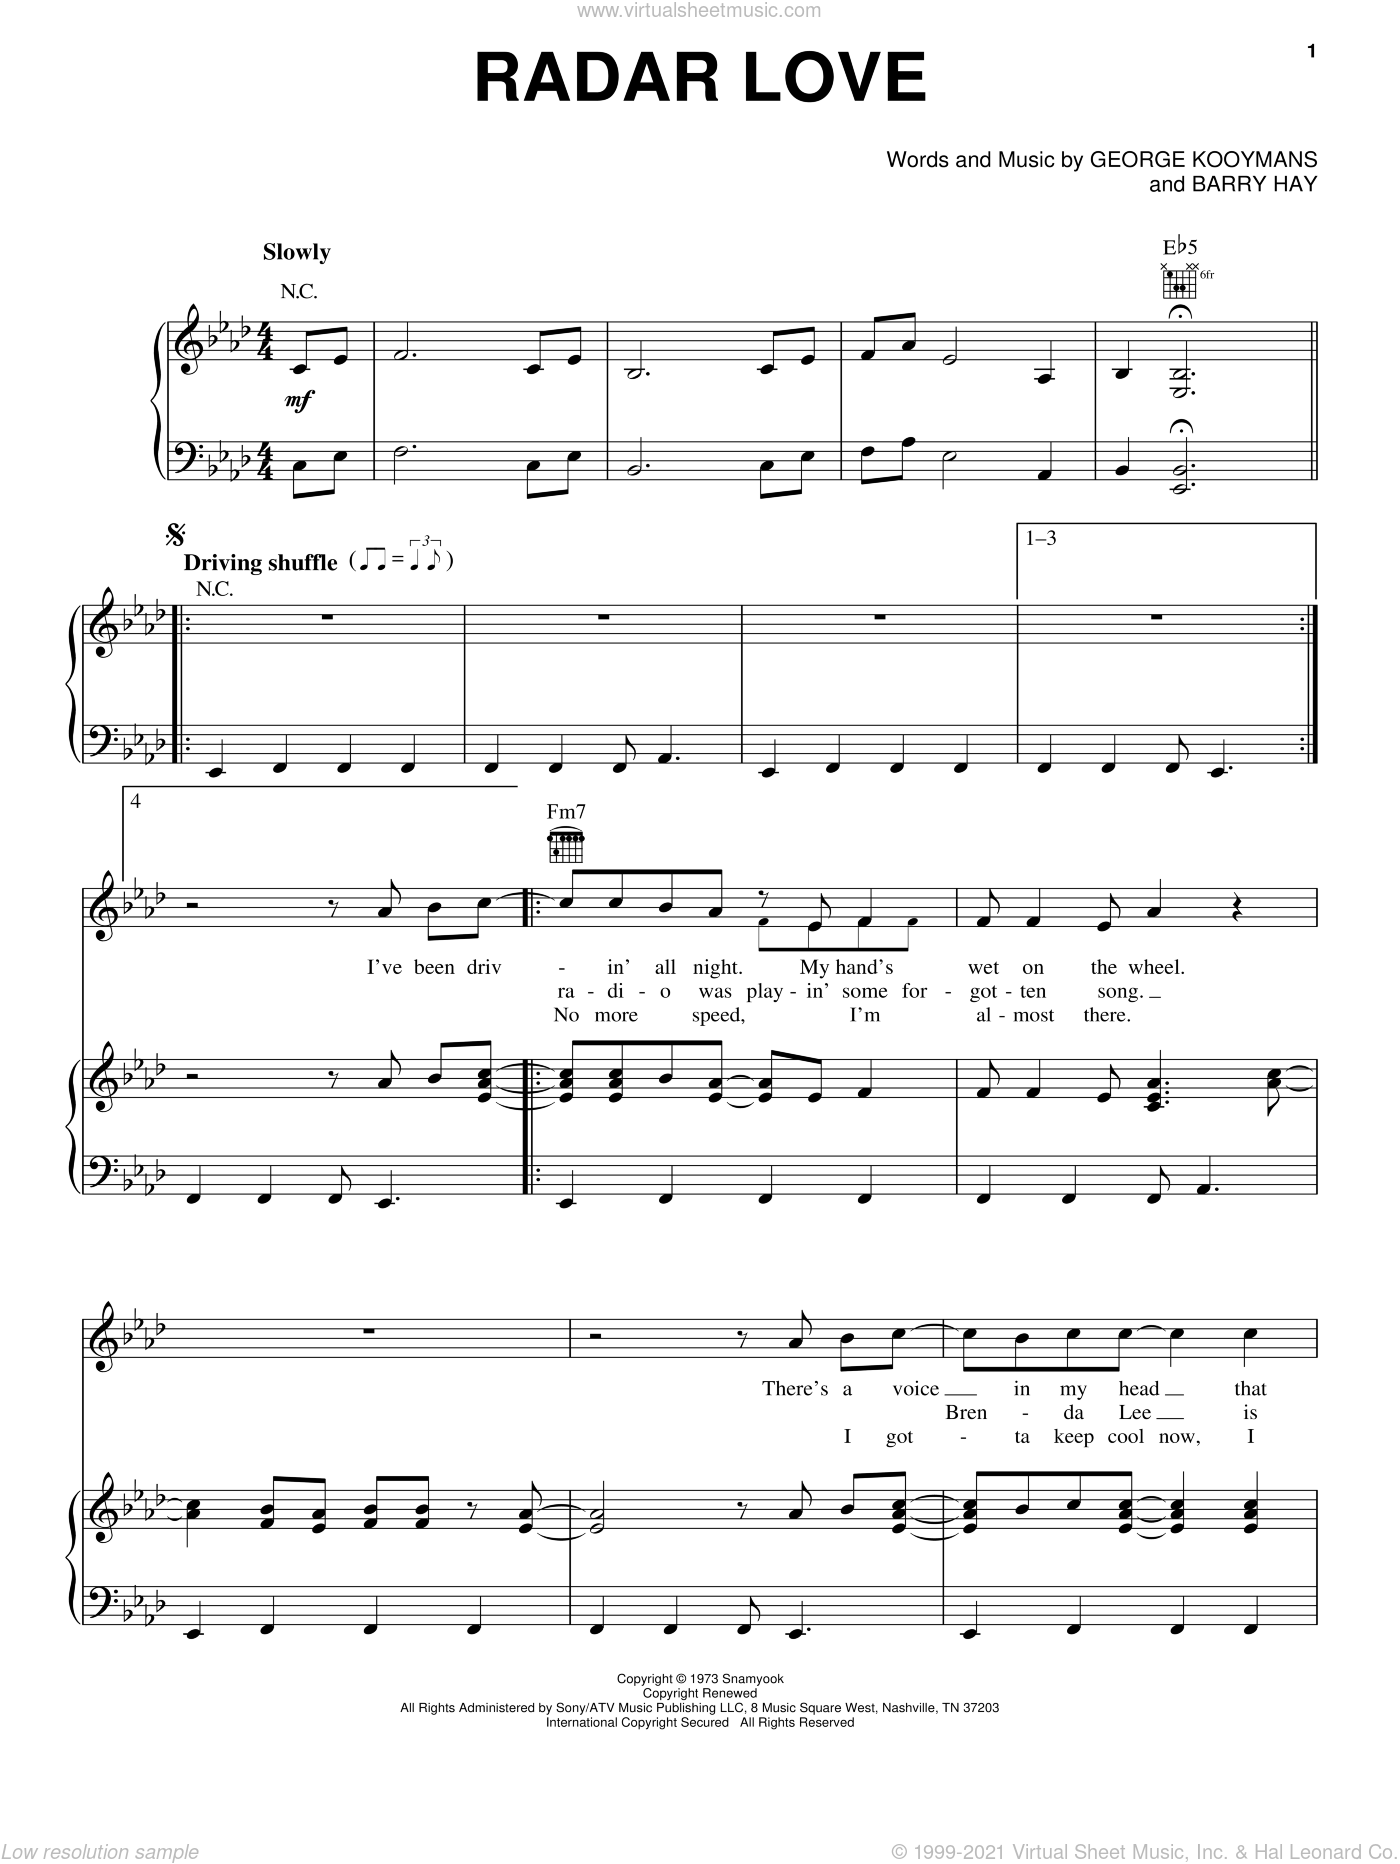 Radar Love sheet music for voice, piano or guitar by George Kooymans